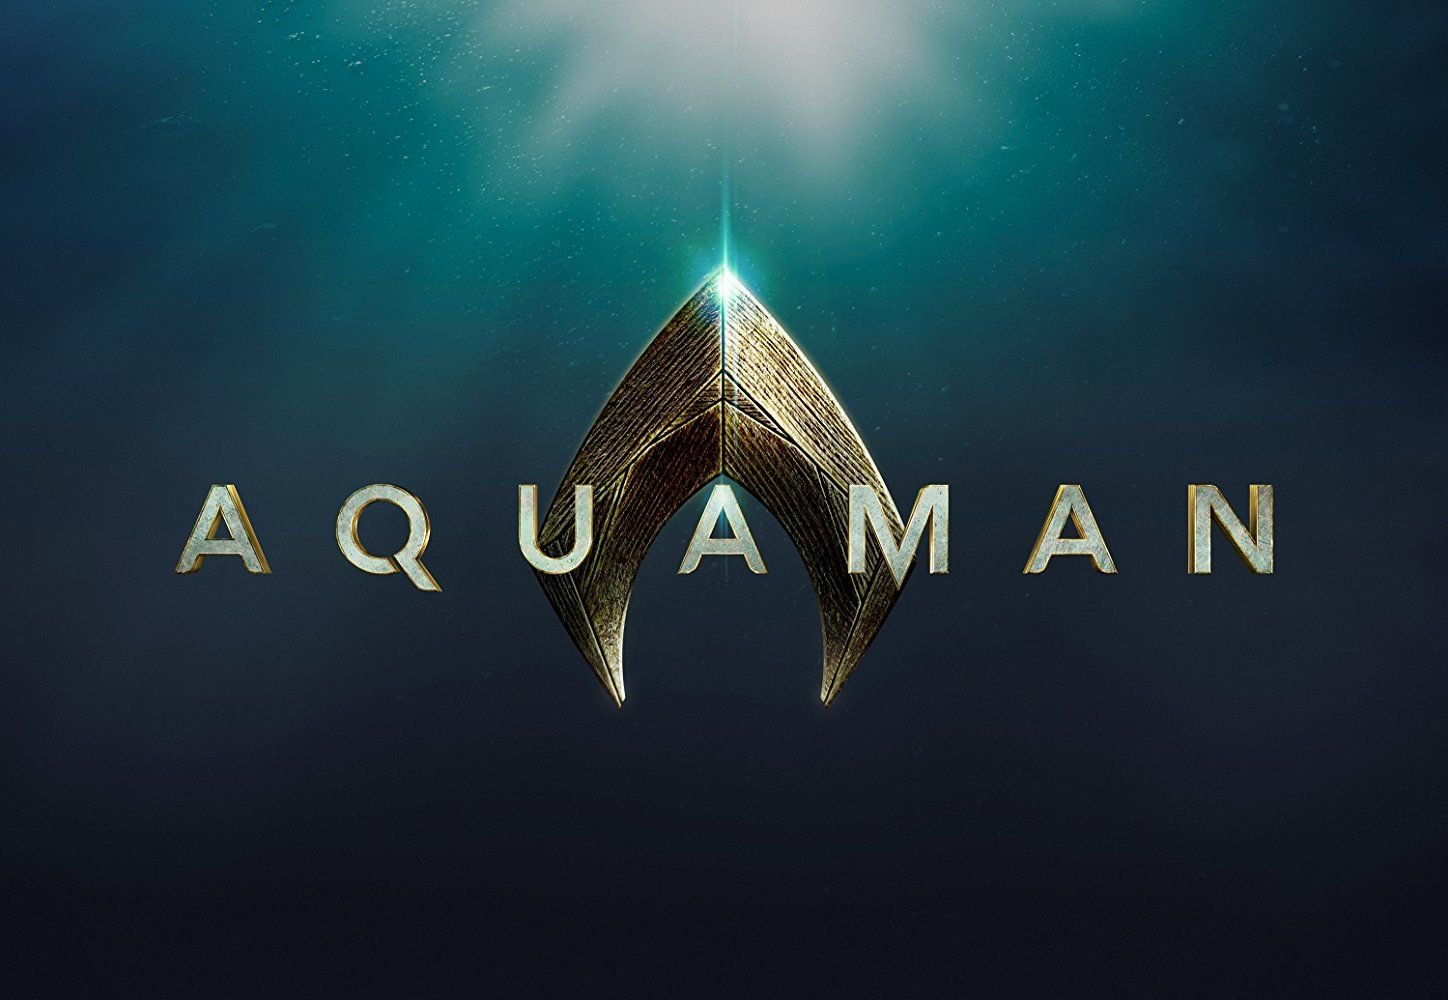 Call us Ishmael! James Wan teases SDCC Aquaman trailer on Twitter